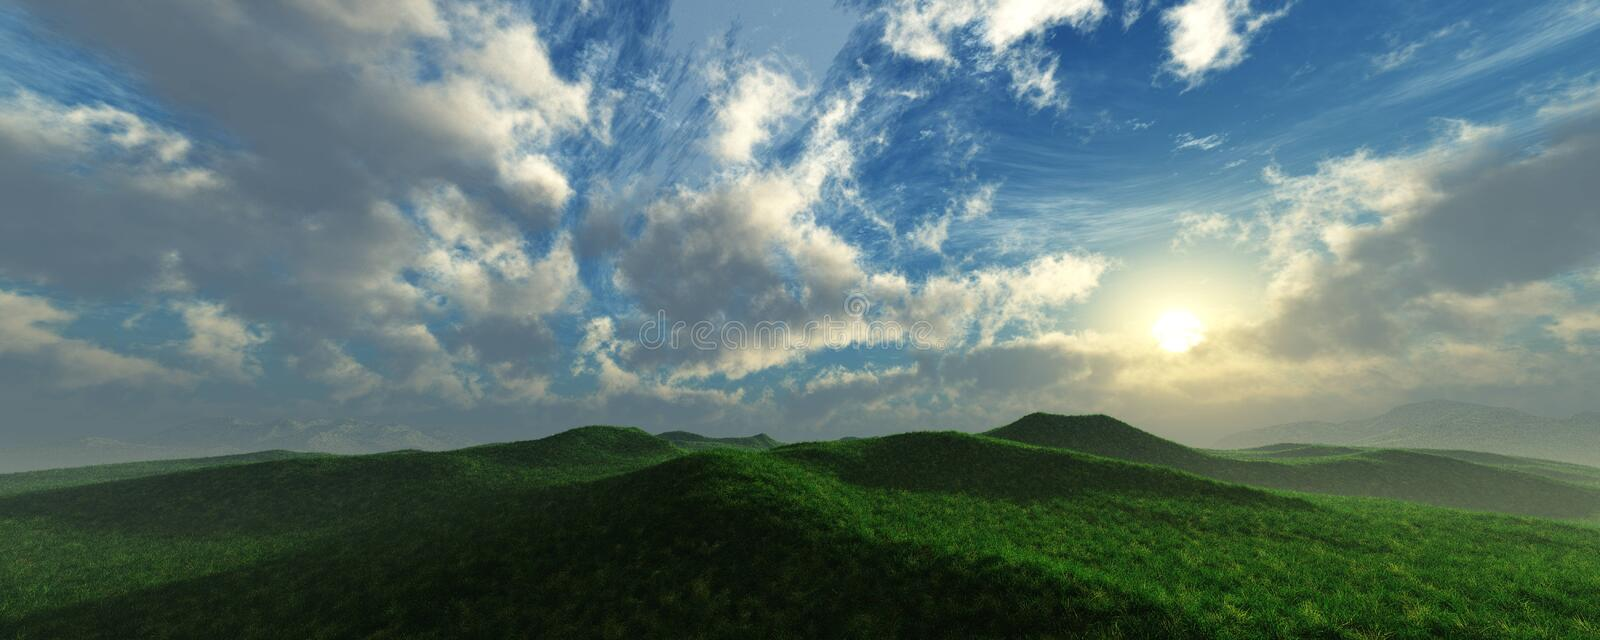 Panorama of the hilly landscape stock image